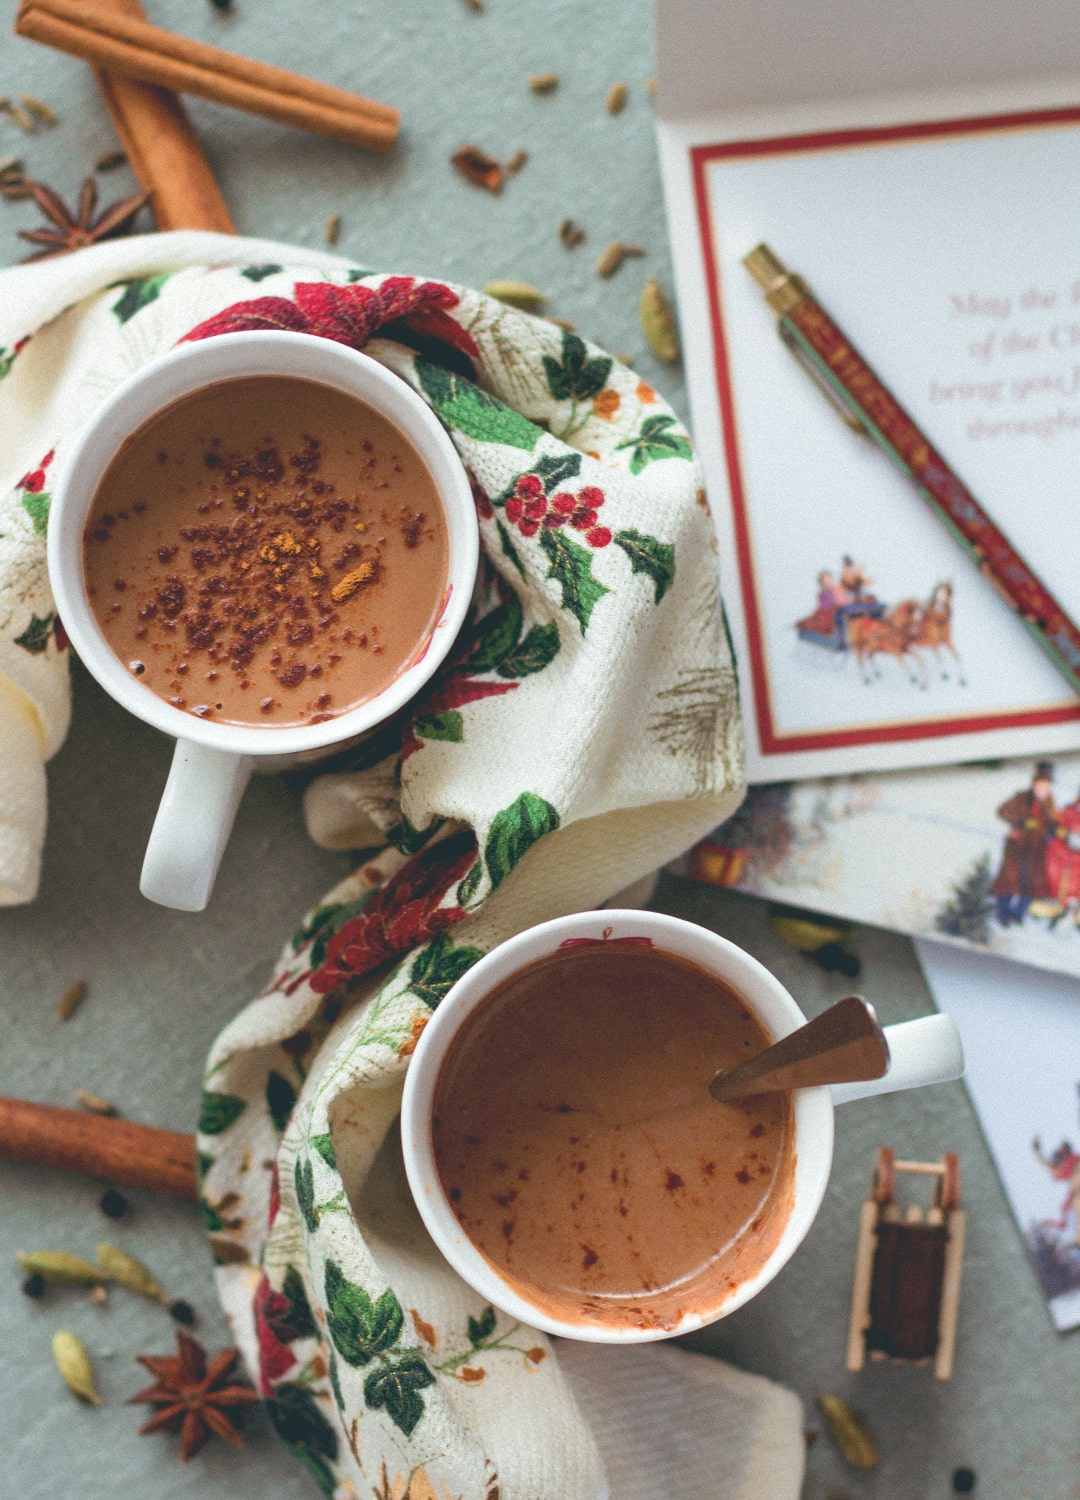 Almond Chai Hot Chocolate - incredibly creamy, delicious, and sweet. Almond milk, cacao, almond butter, tahini, homemade chai spice mix, sea salt, and maple syrup. So yummy! You'll love this hot chocolate, it's so easy to make. (vegan, GF)   thehealthfulideas.com